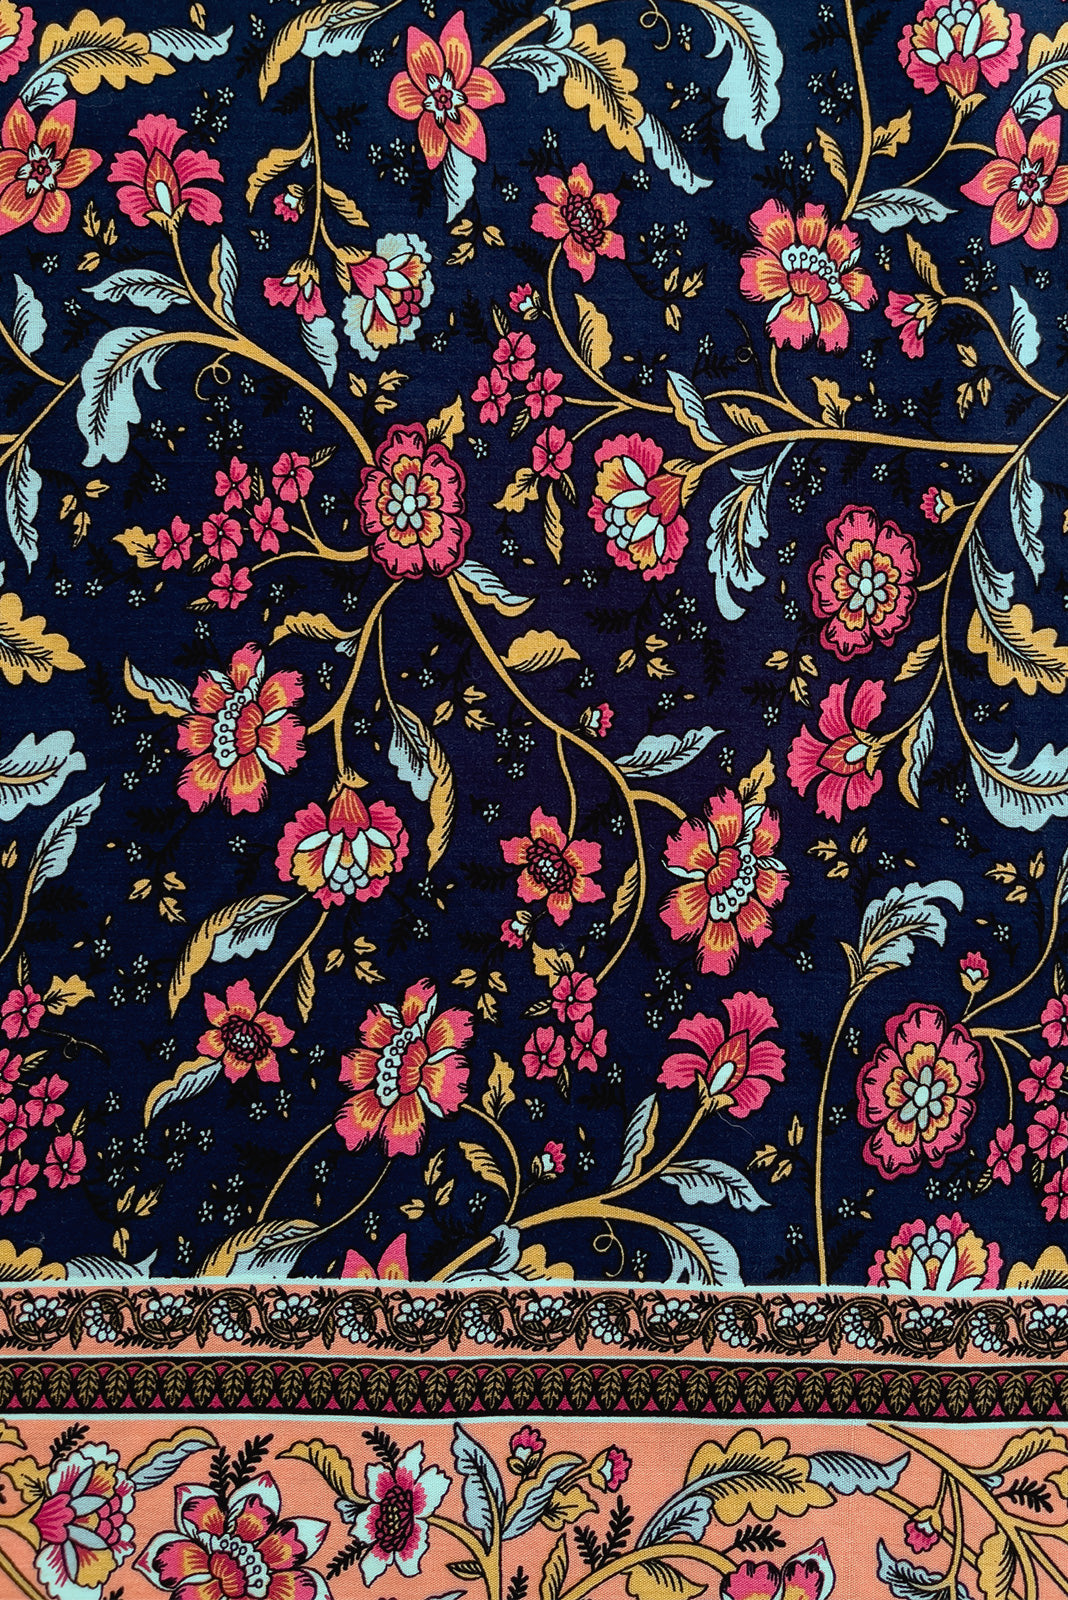 Fabric Swatch of Jaye Navy Maxi Dress featuring 100% rayon in navy base with boho floral print and border feature.